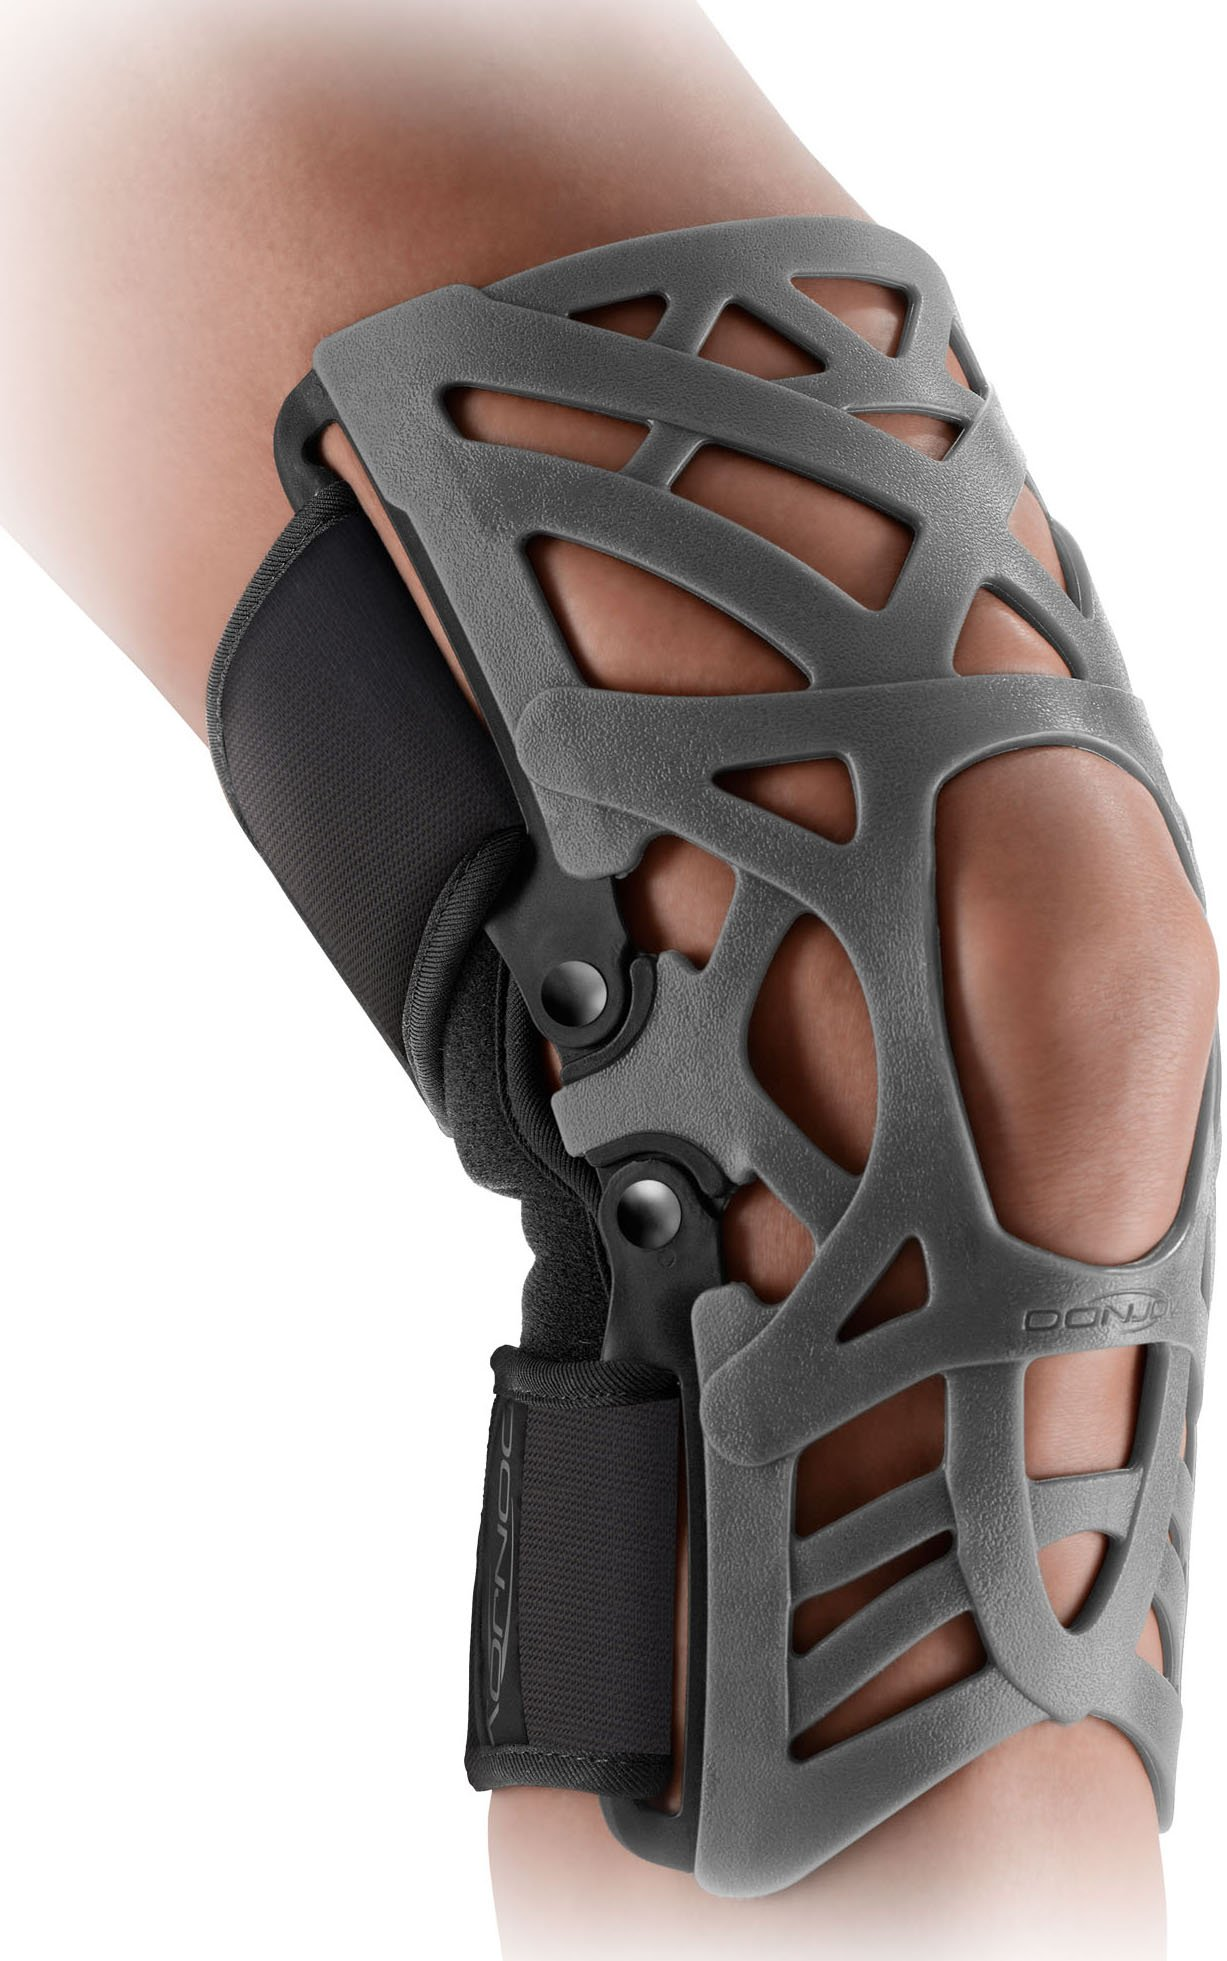 DonJoy Reaction Web Knee Support Brace with Compression Undersleeve: Grey, Medium/Large by DonJoy